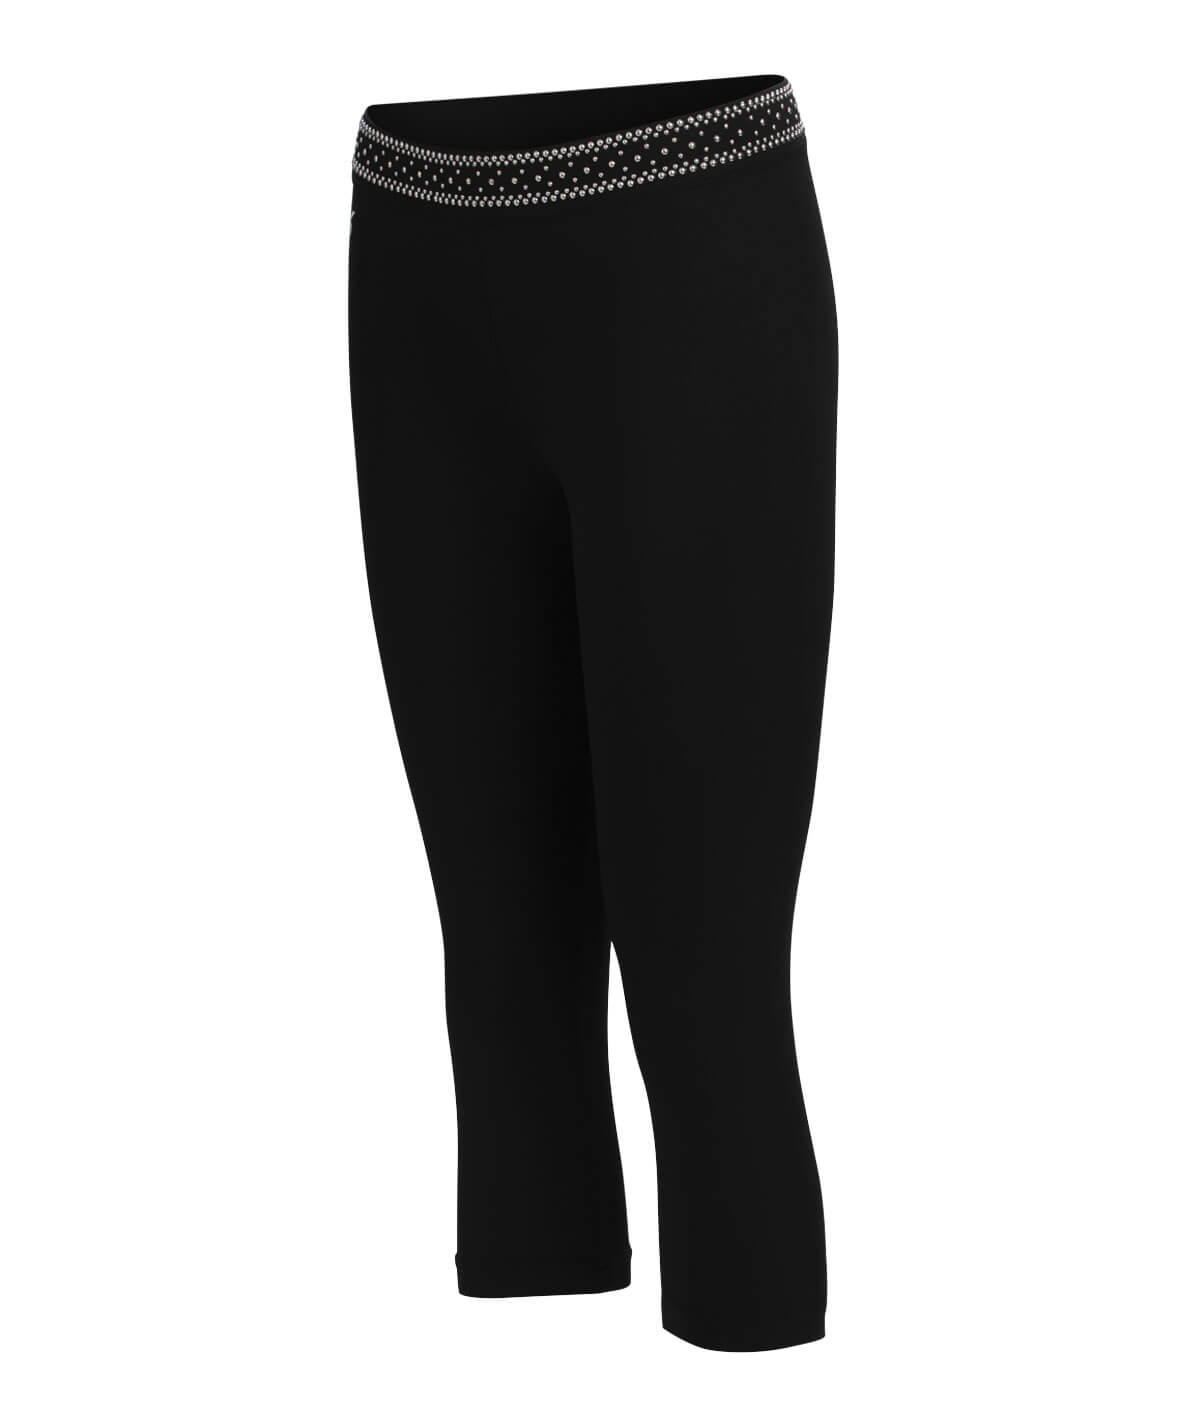 GK All Star Nailhead Banded Capris